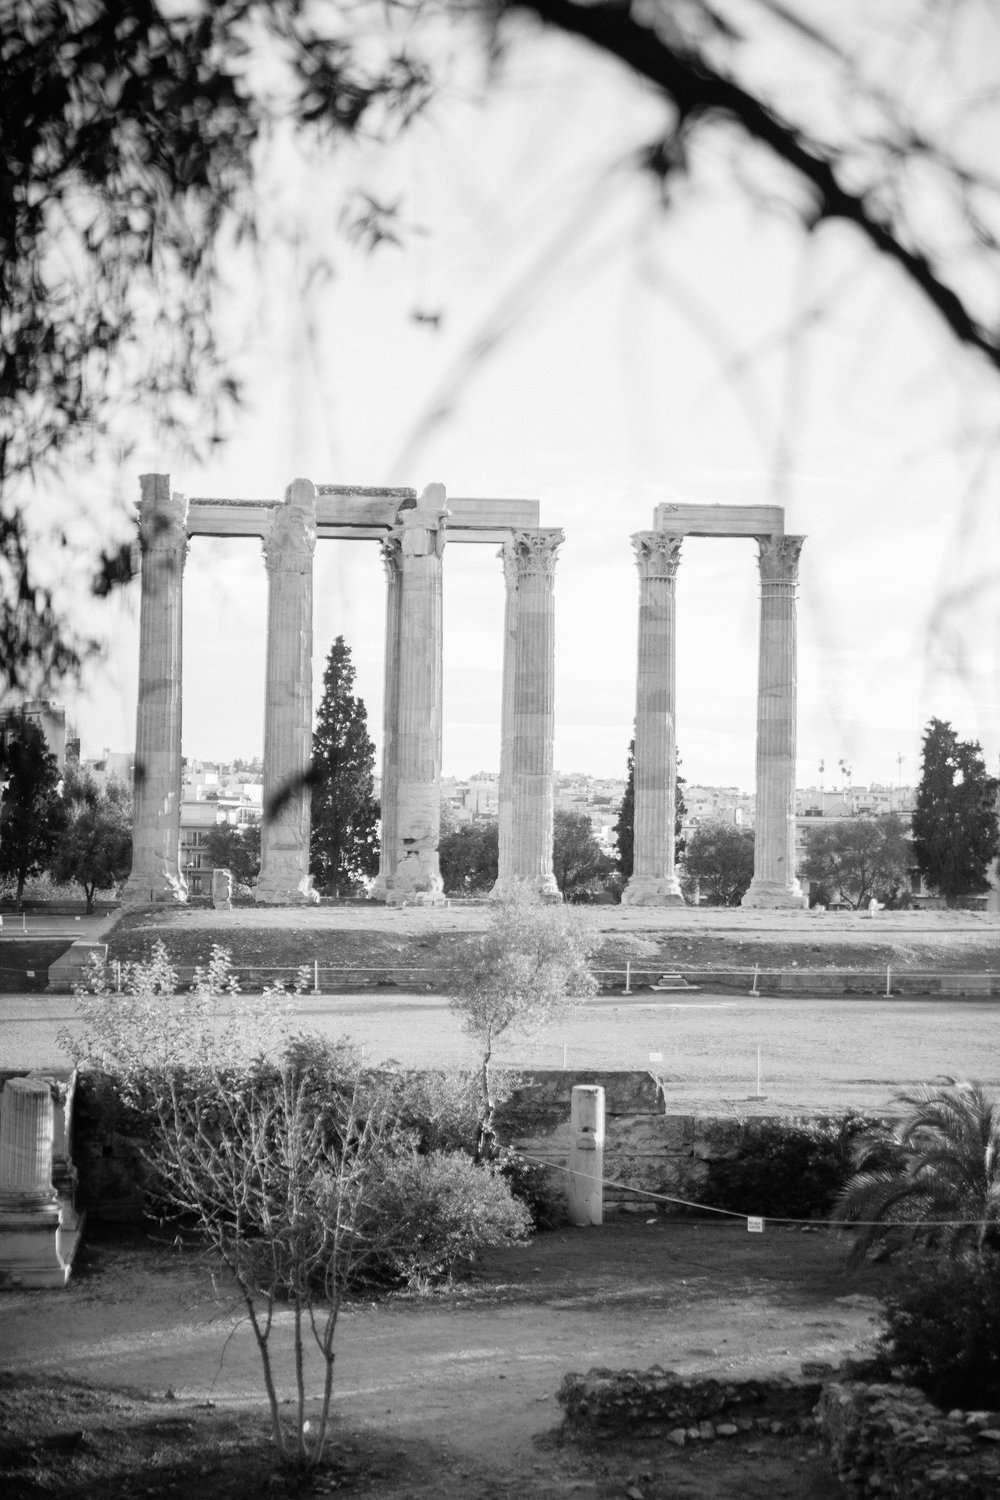 SAMMI_HOLIDAY_ATHENS_GREECE_LANDSCAPE_SUN_HISTORY_PHOTPGRAPHER-194.JPG